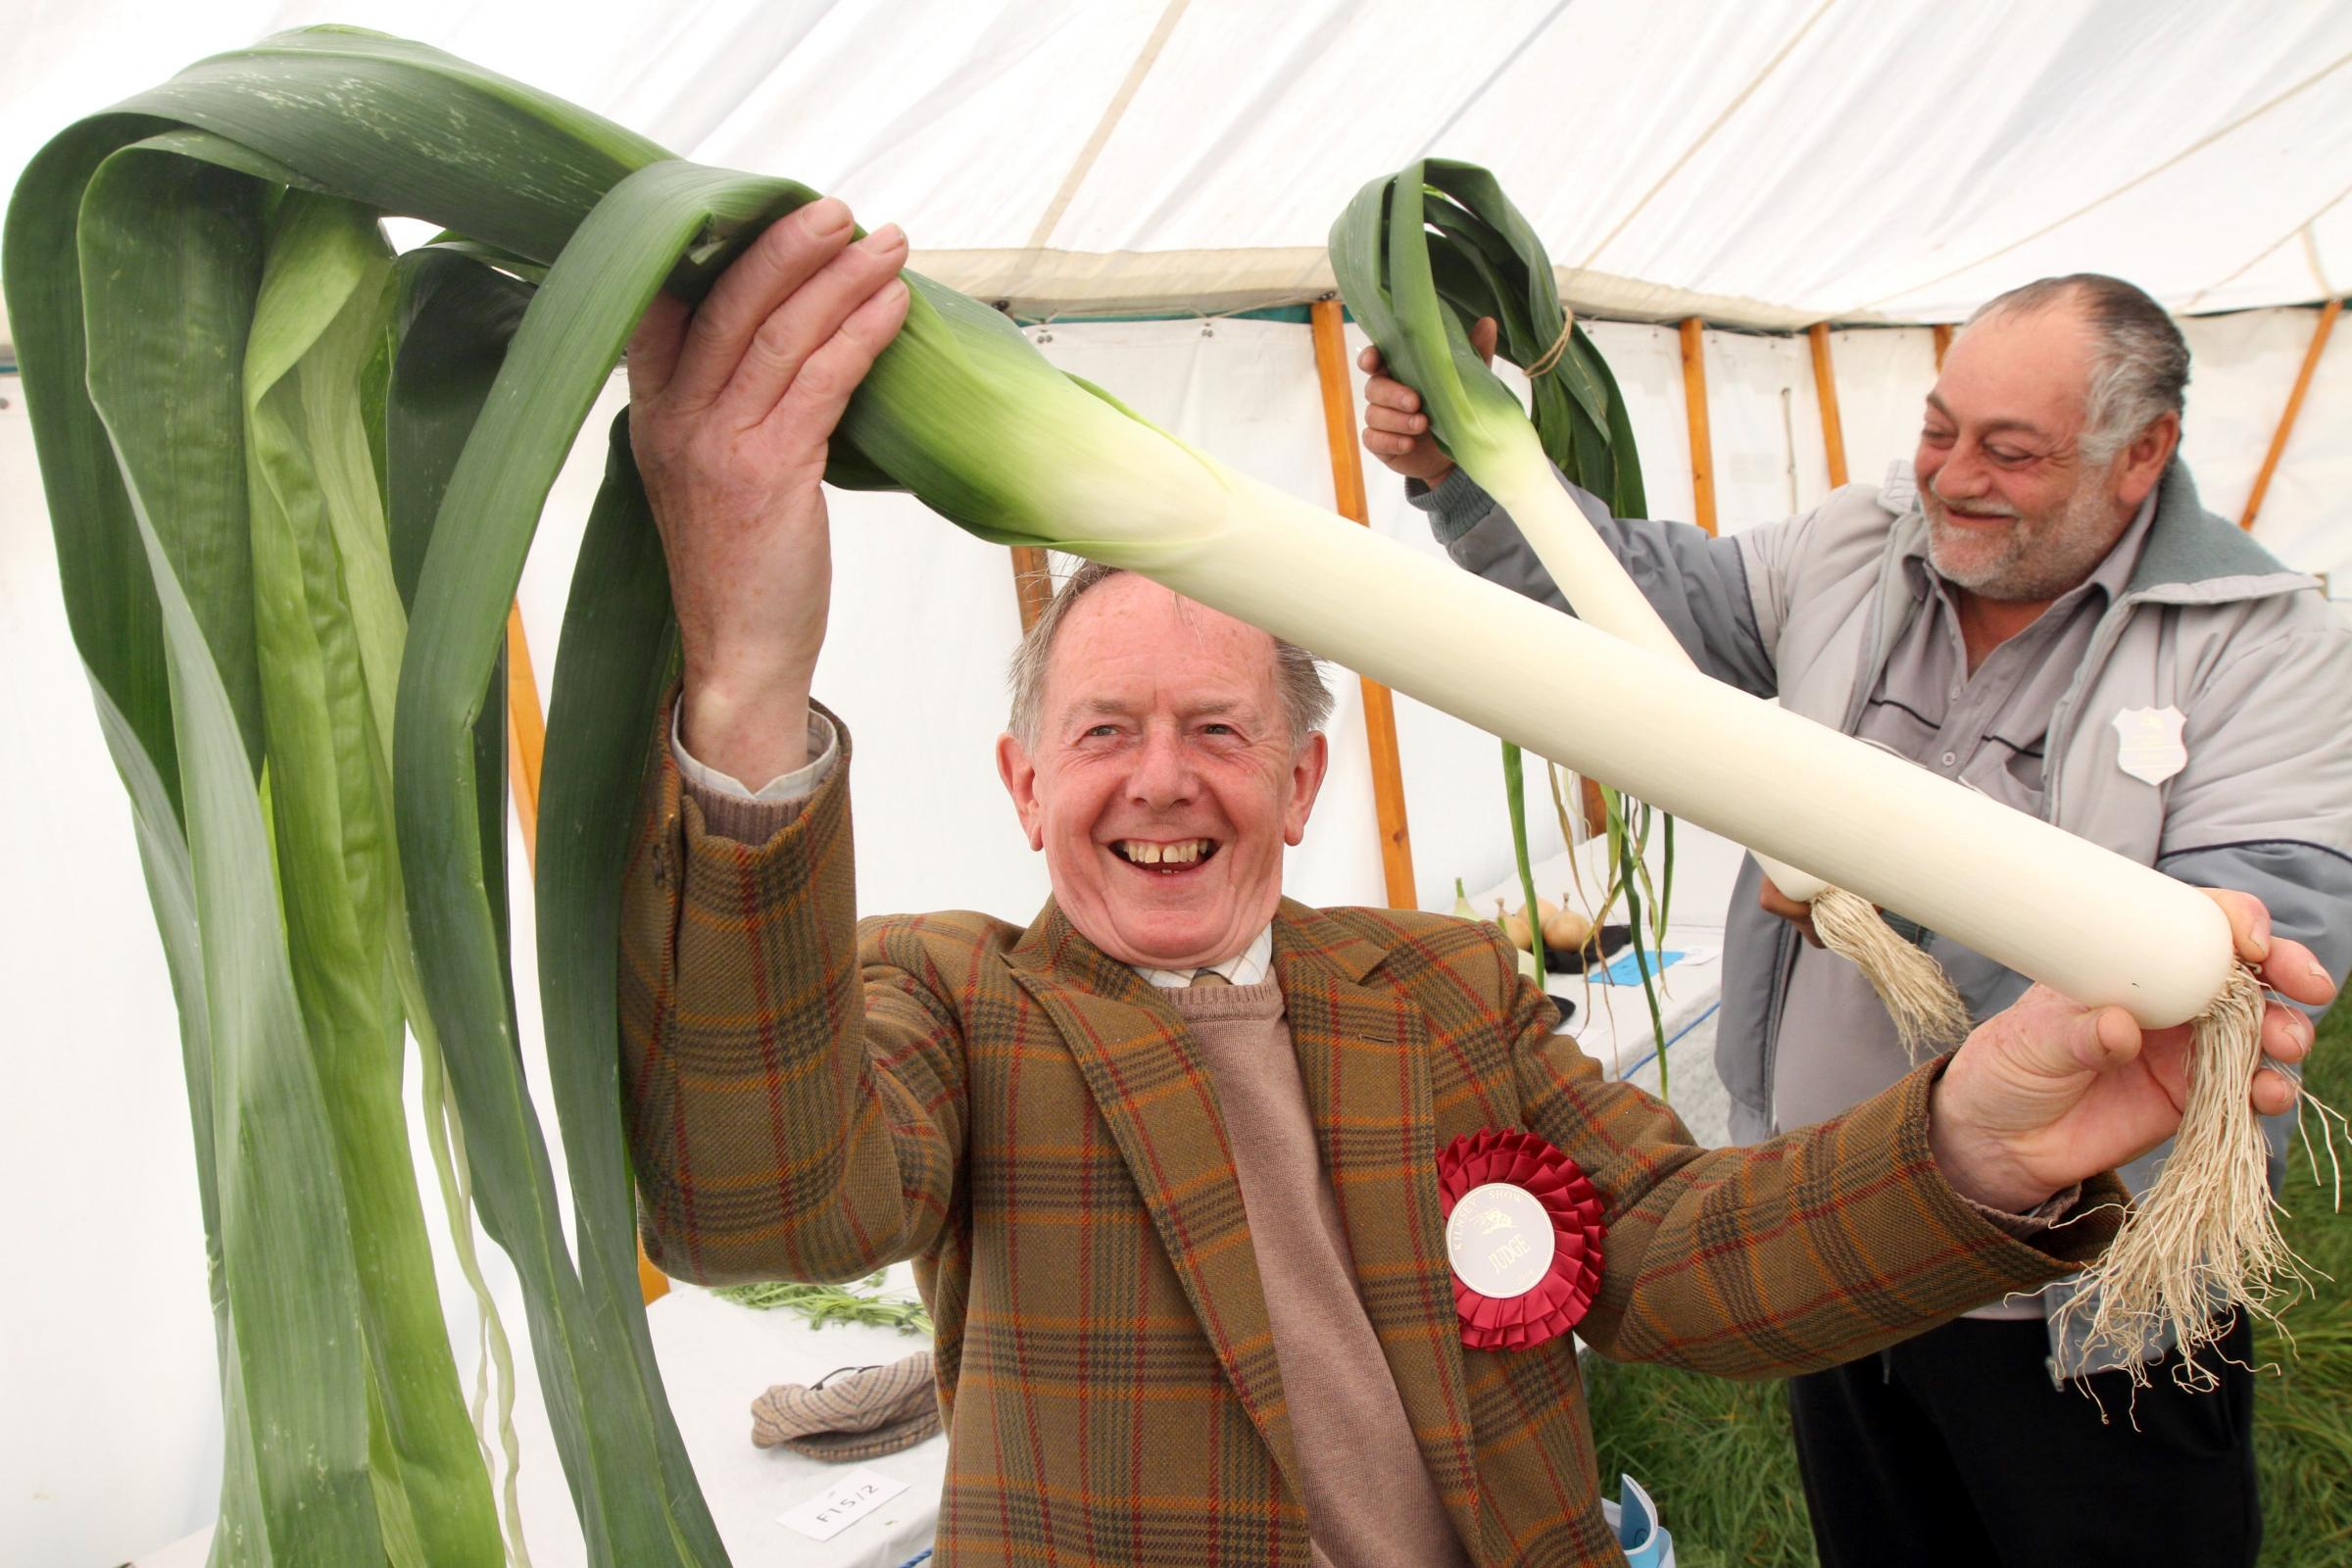 Sunny and breezy Kilnsey Show bring smiles to visitors